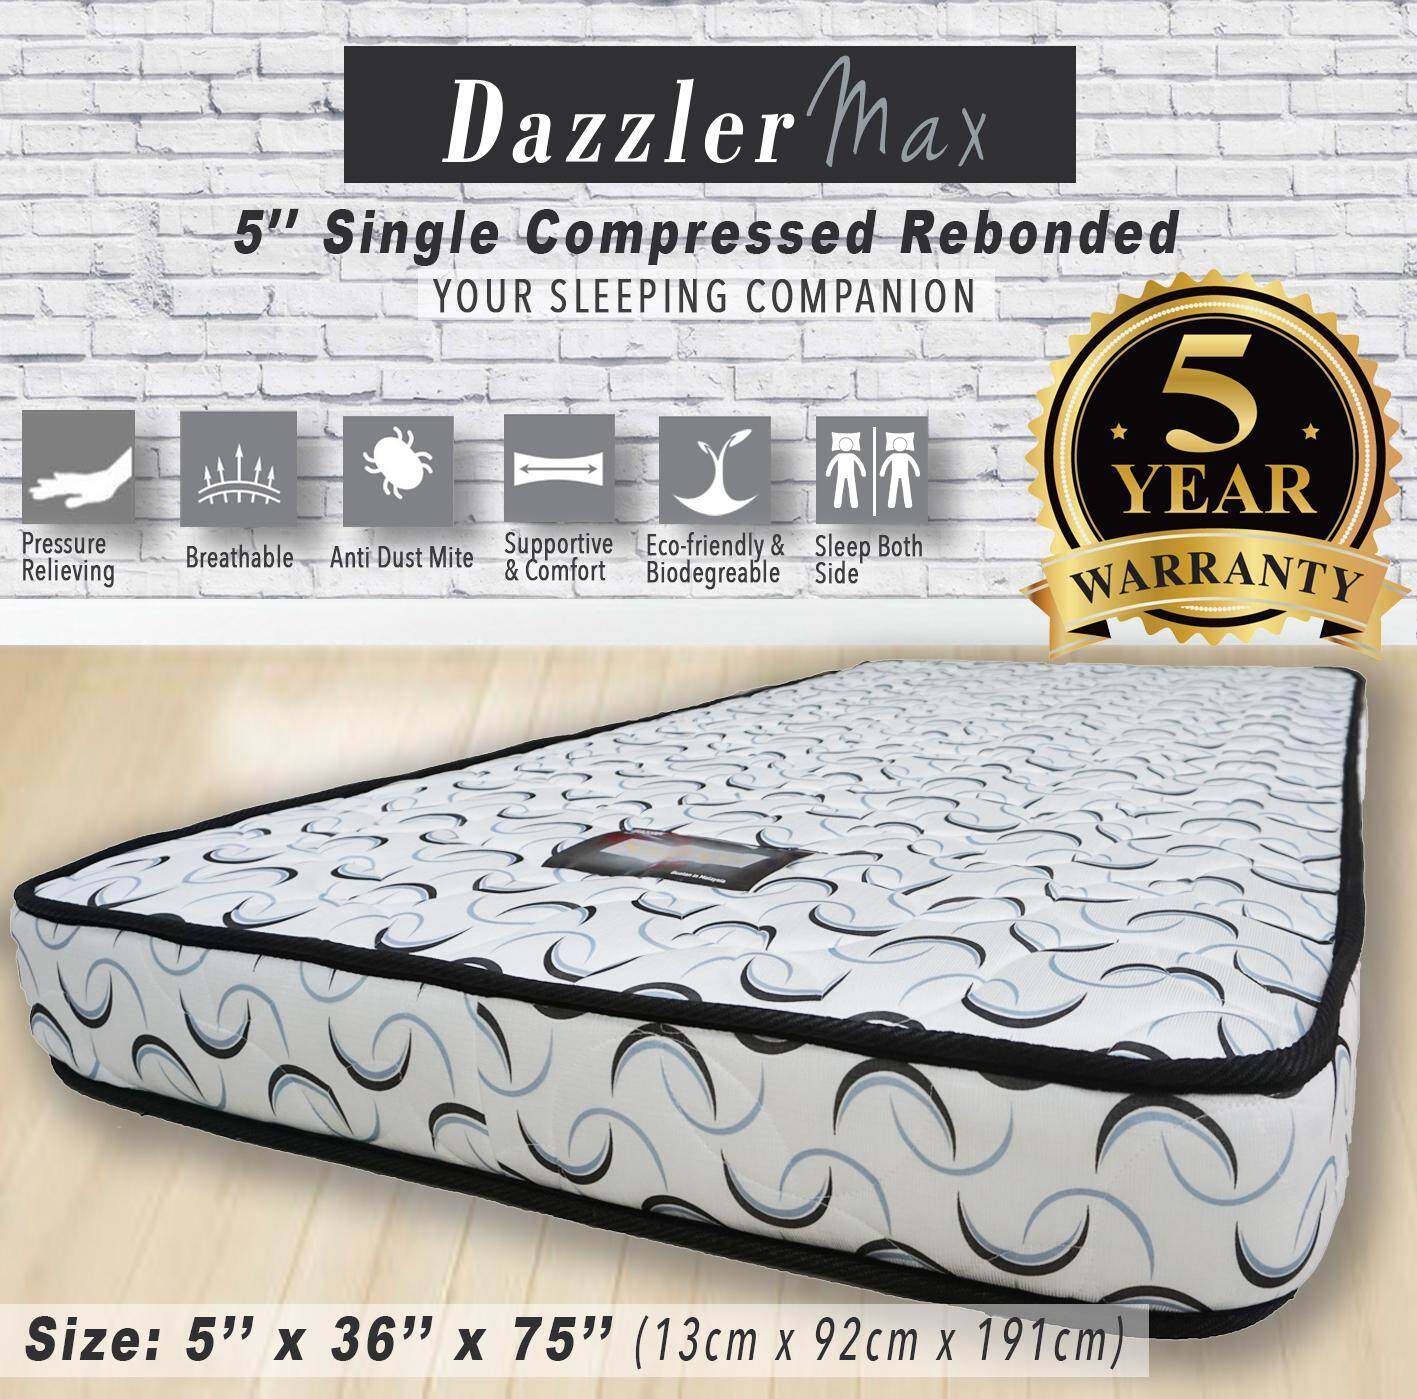 [12.12] (2019) Dazzler Max 5 High Quality Single Compressed Rebonded Mattress Bed Tilam 5 years Warranty